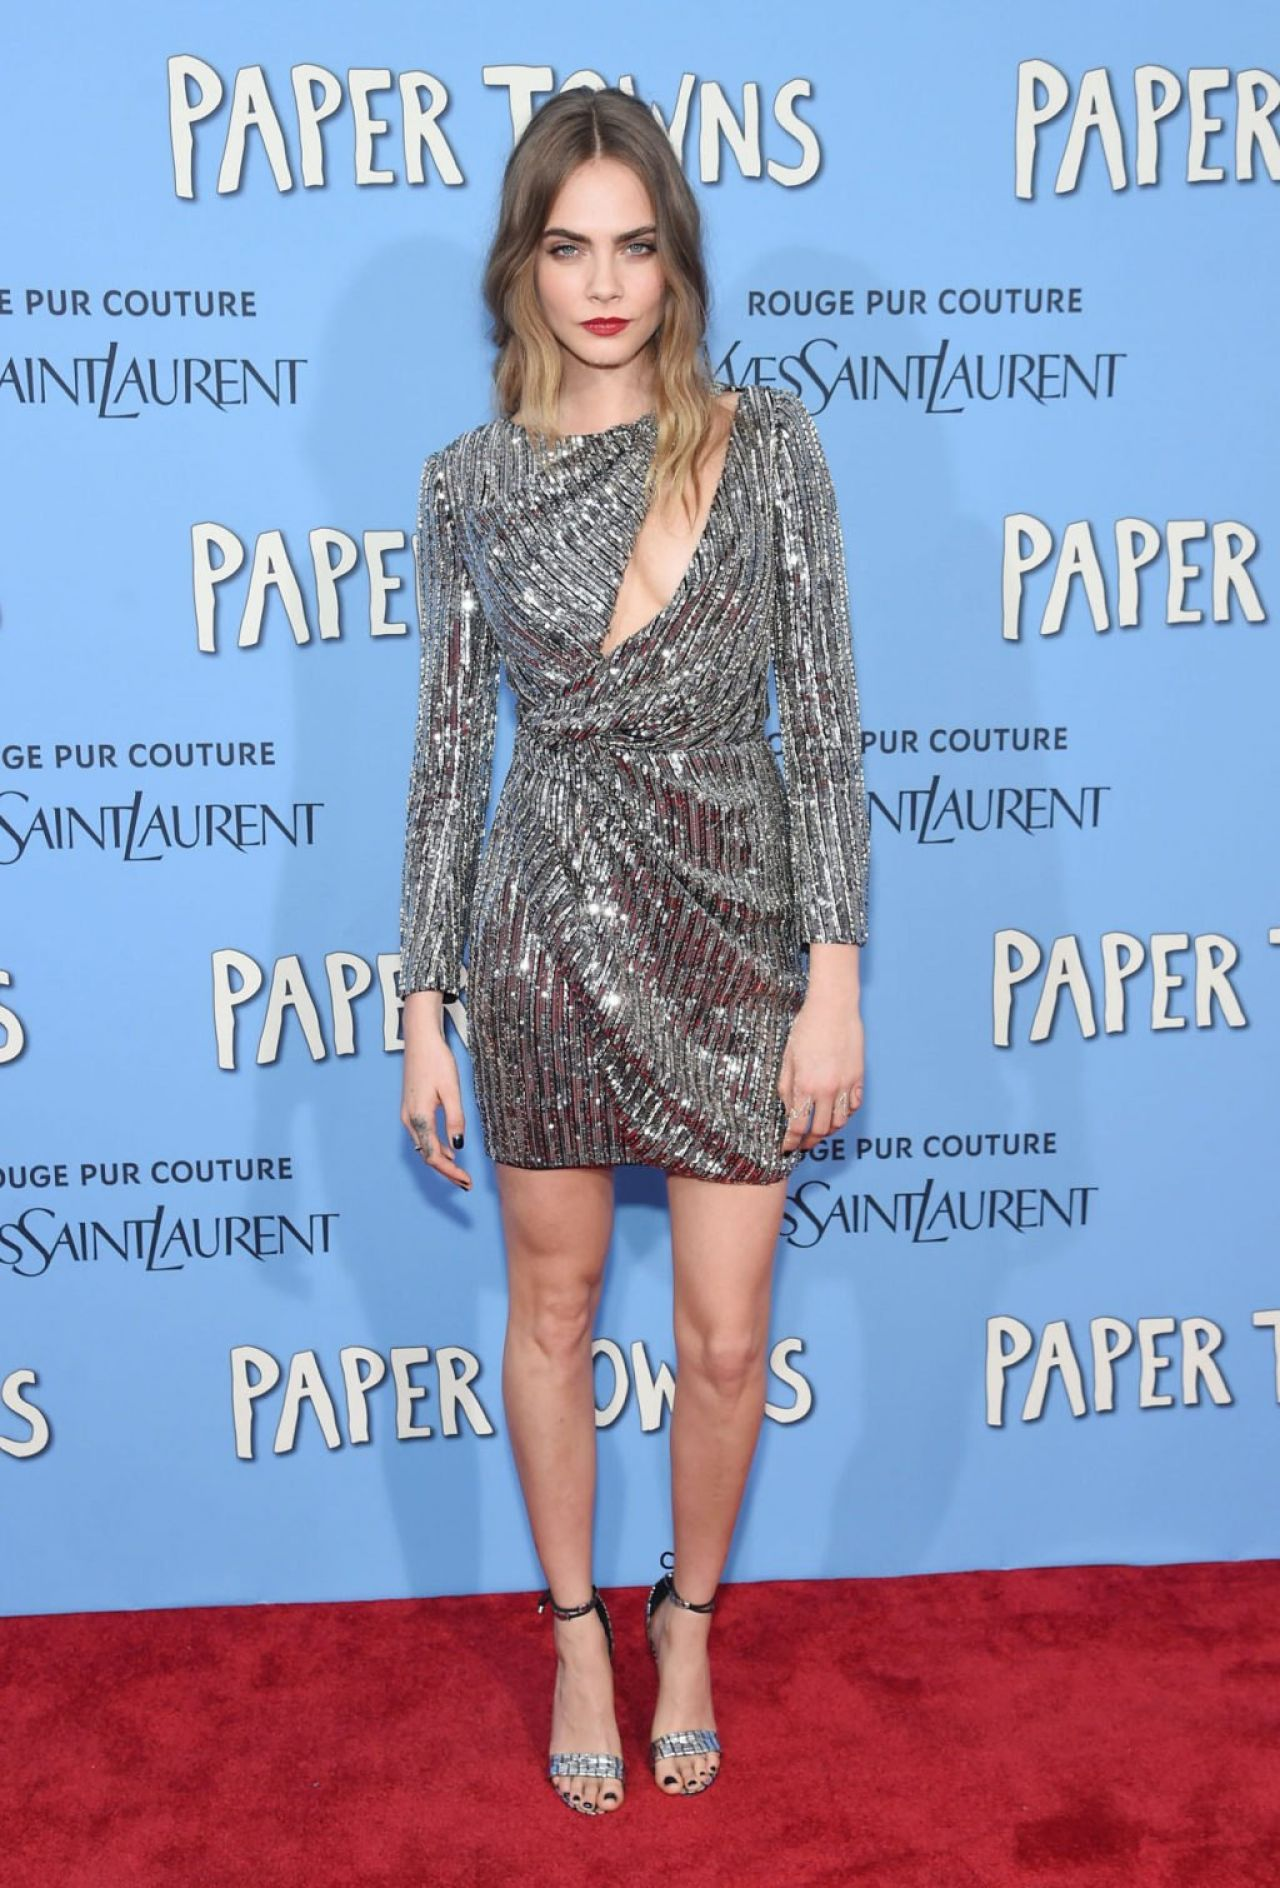 cara-delevingne in-saint-laurent--paper-towns-premiere-in-new-york-city-july-2015_2